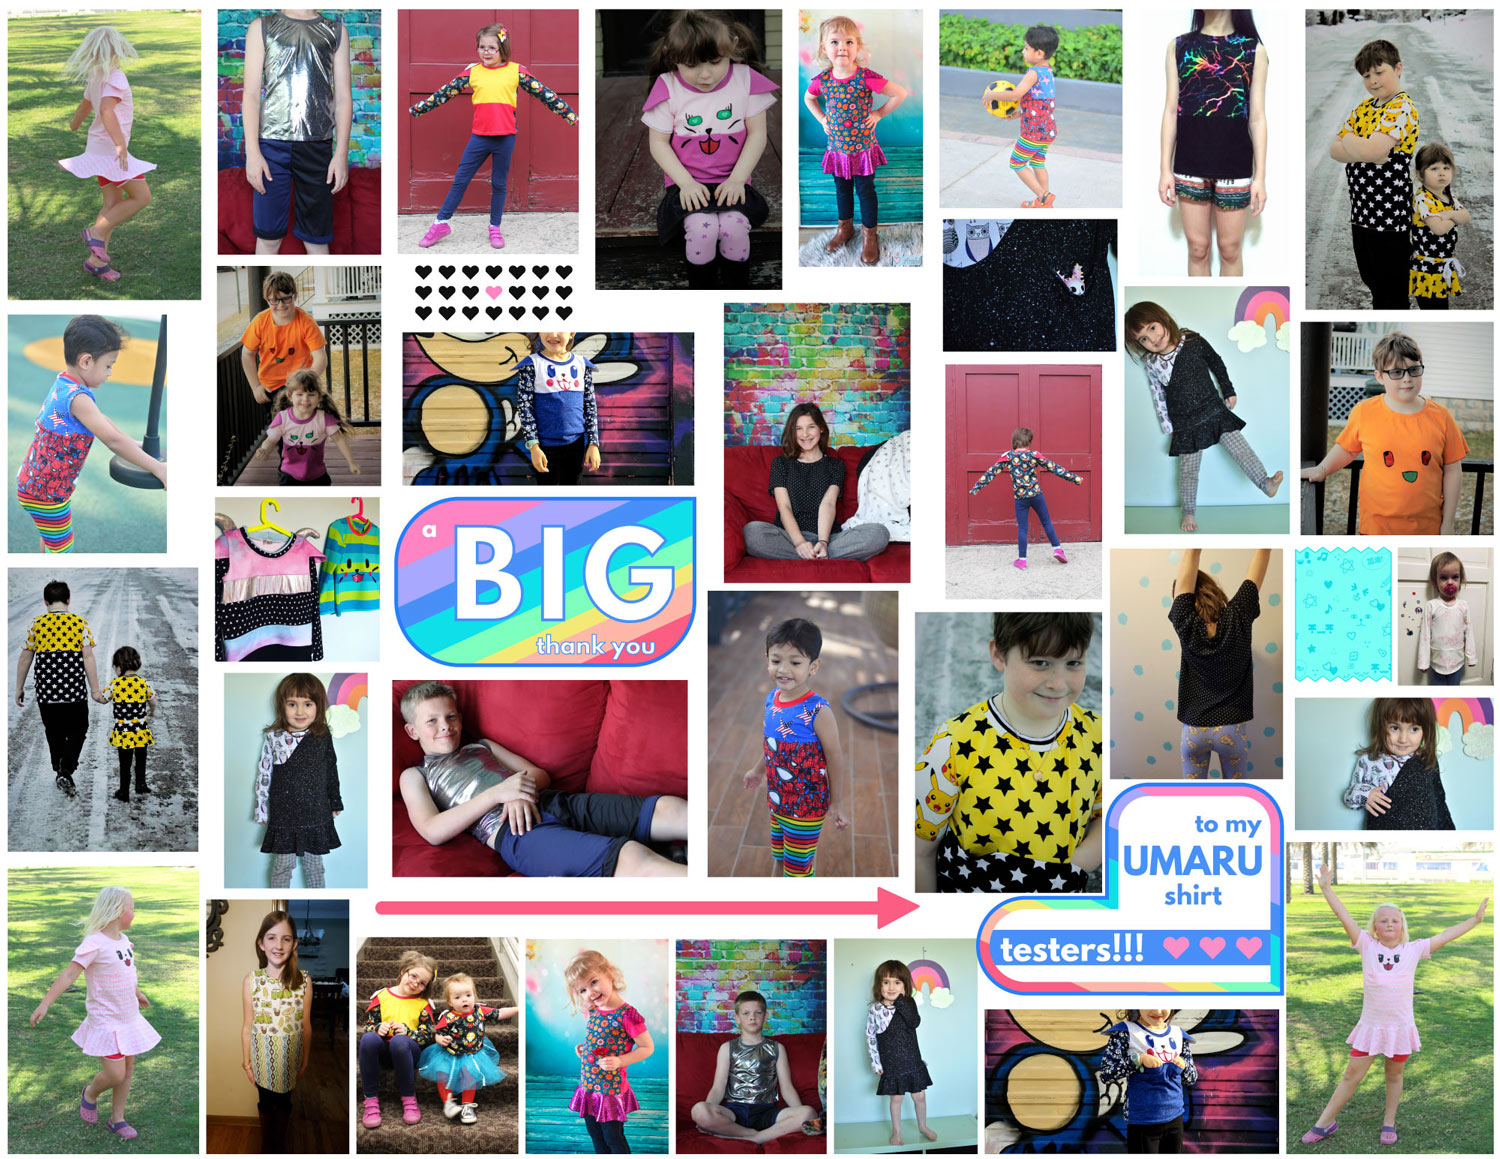 My Umaru testers were: Narelle ( Threadistry ), Kat ( the Perpetual Stitch ),Laurie ( The Bear and Pea Atelier ), Nurul ( Luvly Bums ), Lore ( Five Blessings Boutique ), Magda ( House of Estrela ), Ari ( Max-California ), Katie ( Robutton ), Shirley, Debbie ( Momma Bear Sews ), Manda ( Sewing Ambi ), and Karin ( Cookie Bug Creations ).